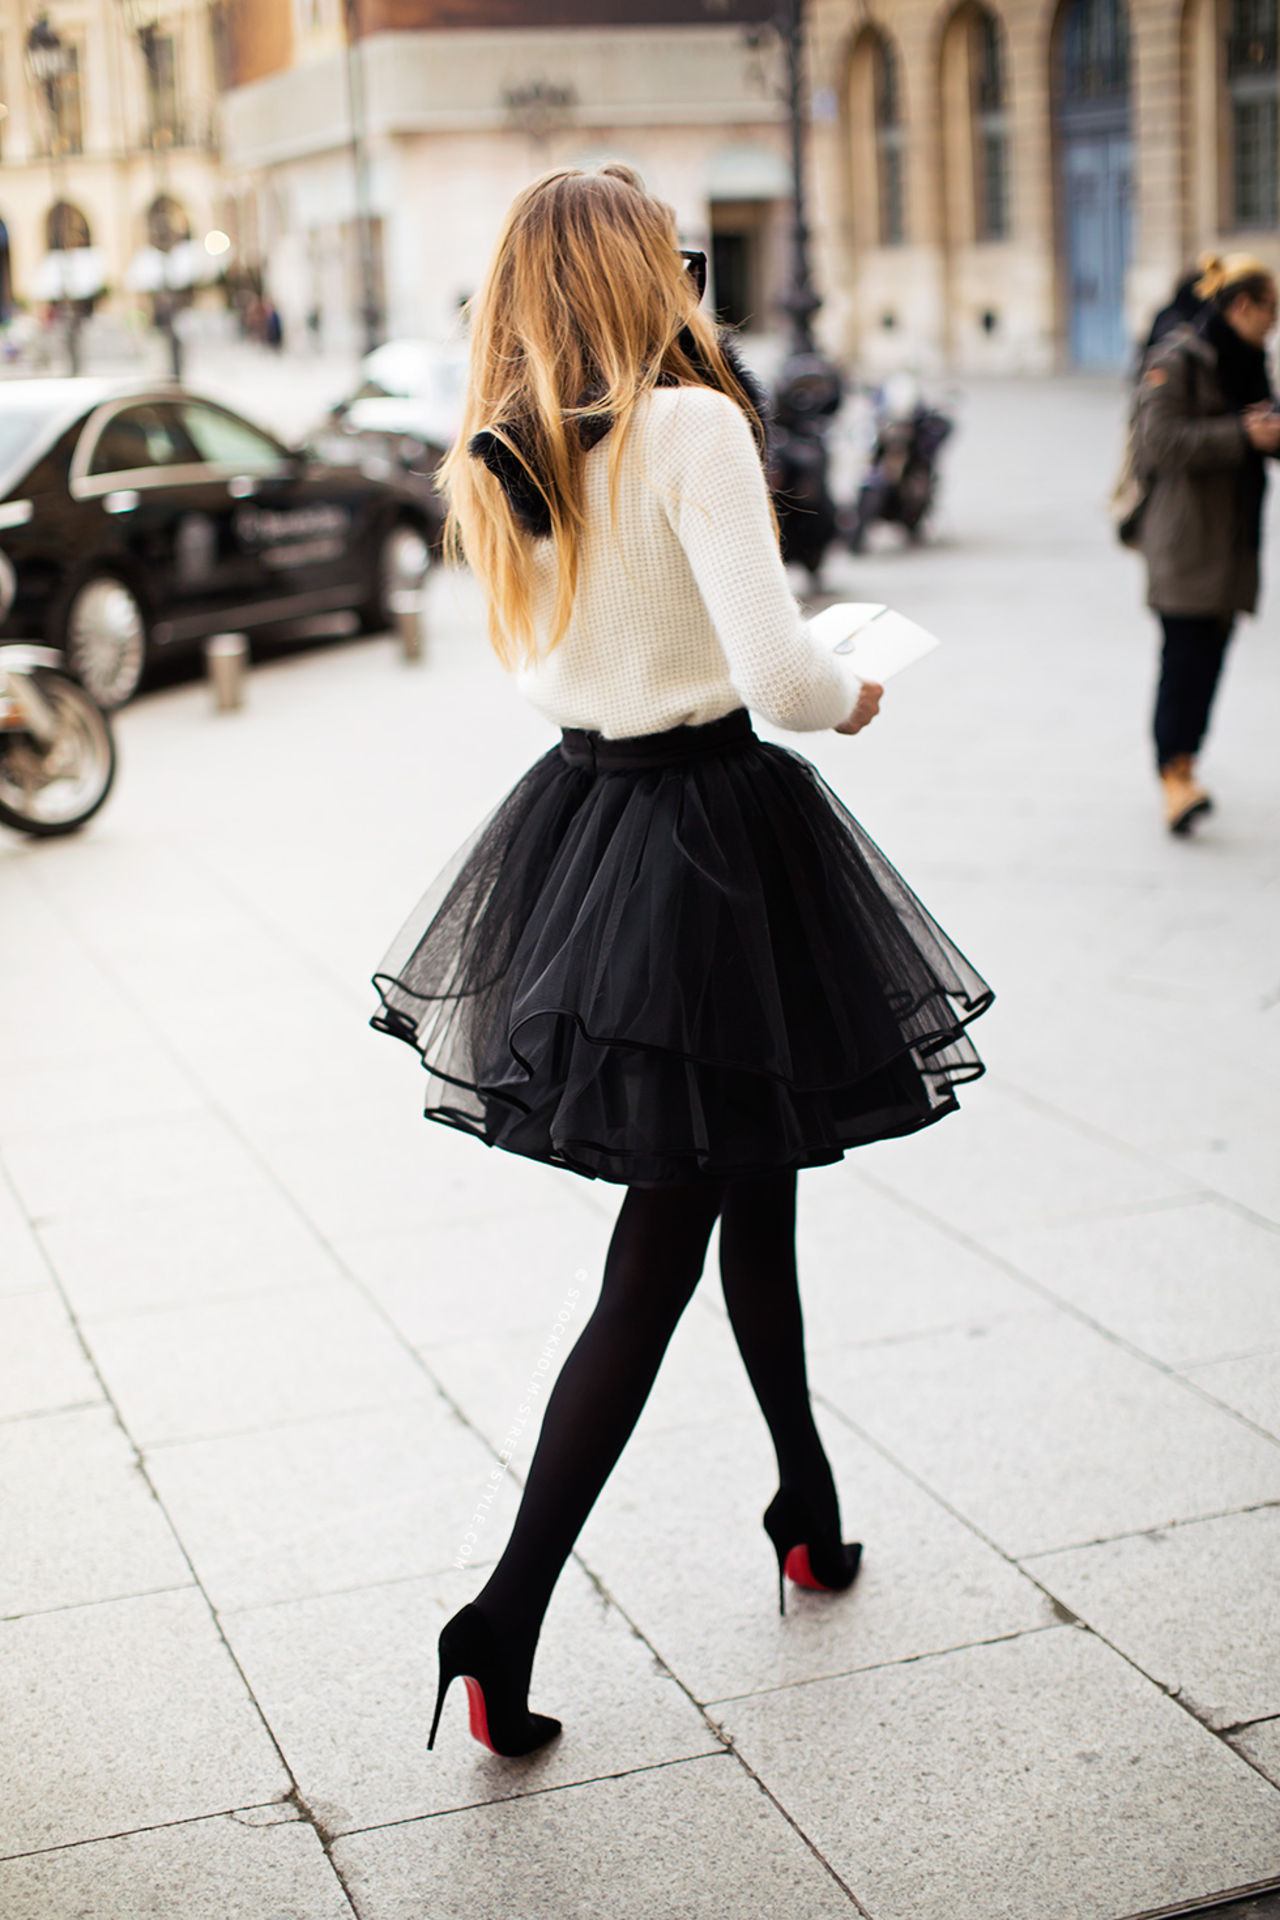 Because sometimes a tutu does just the trick. xo -A